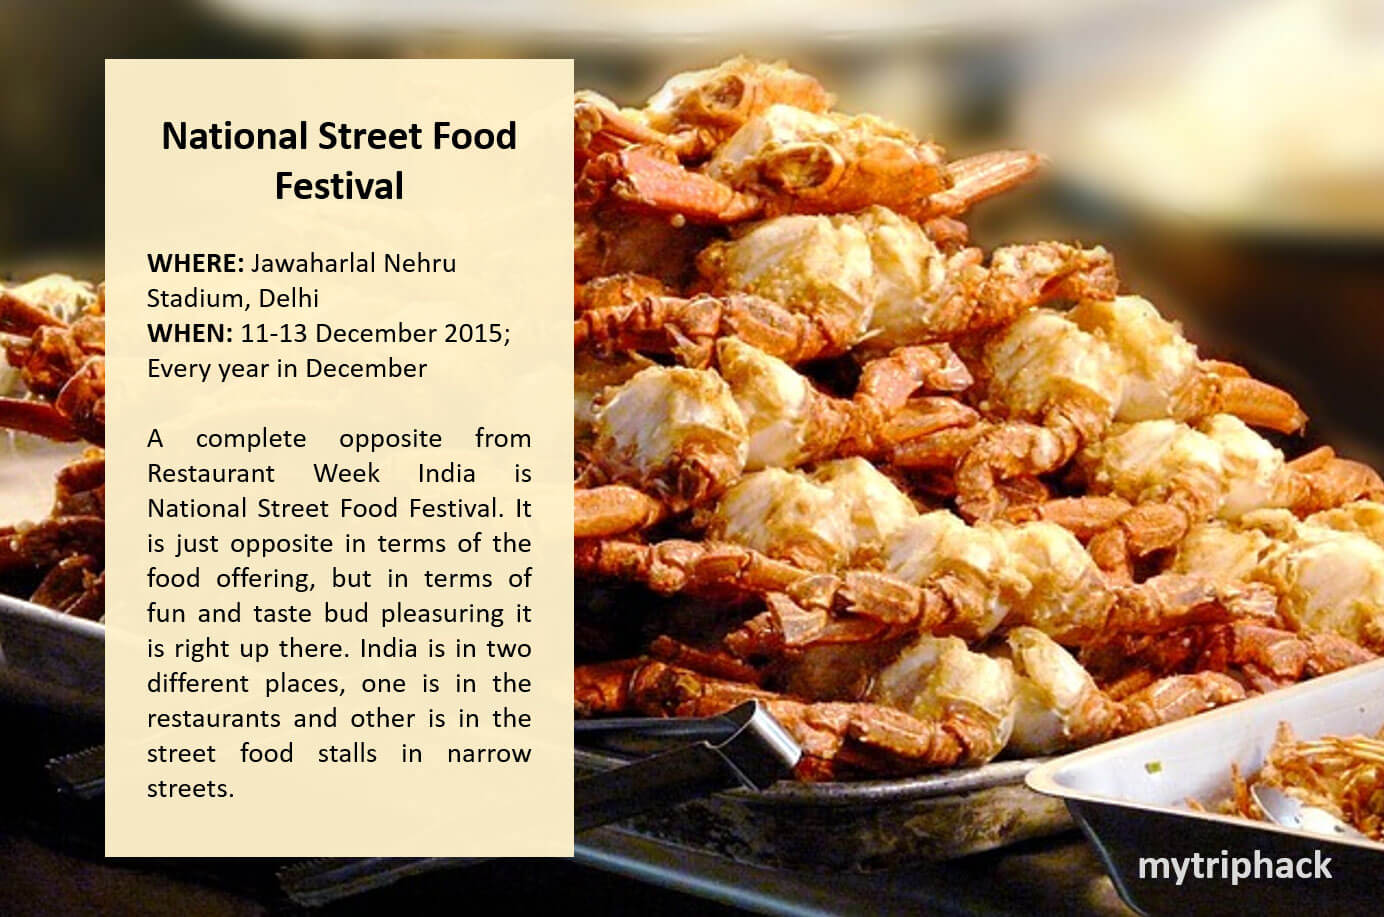 Famous Food Festivals In India You Shouldnt Miss - 12 over the top stadium foods to try this year